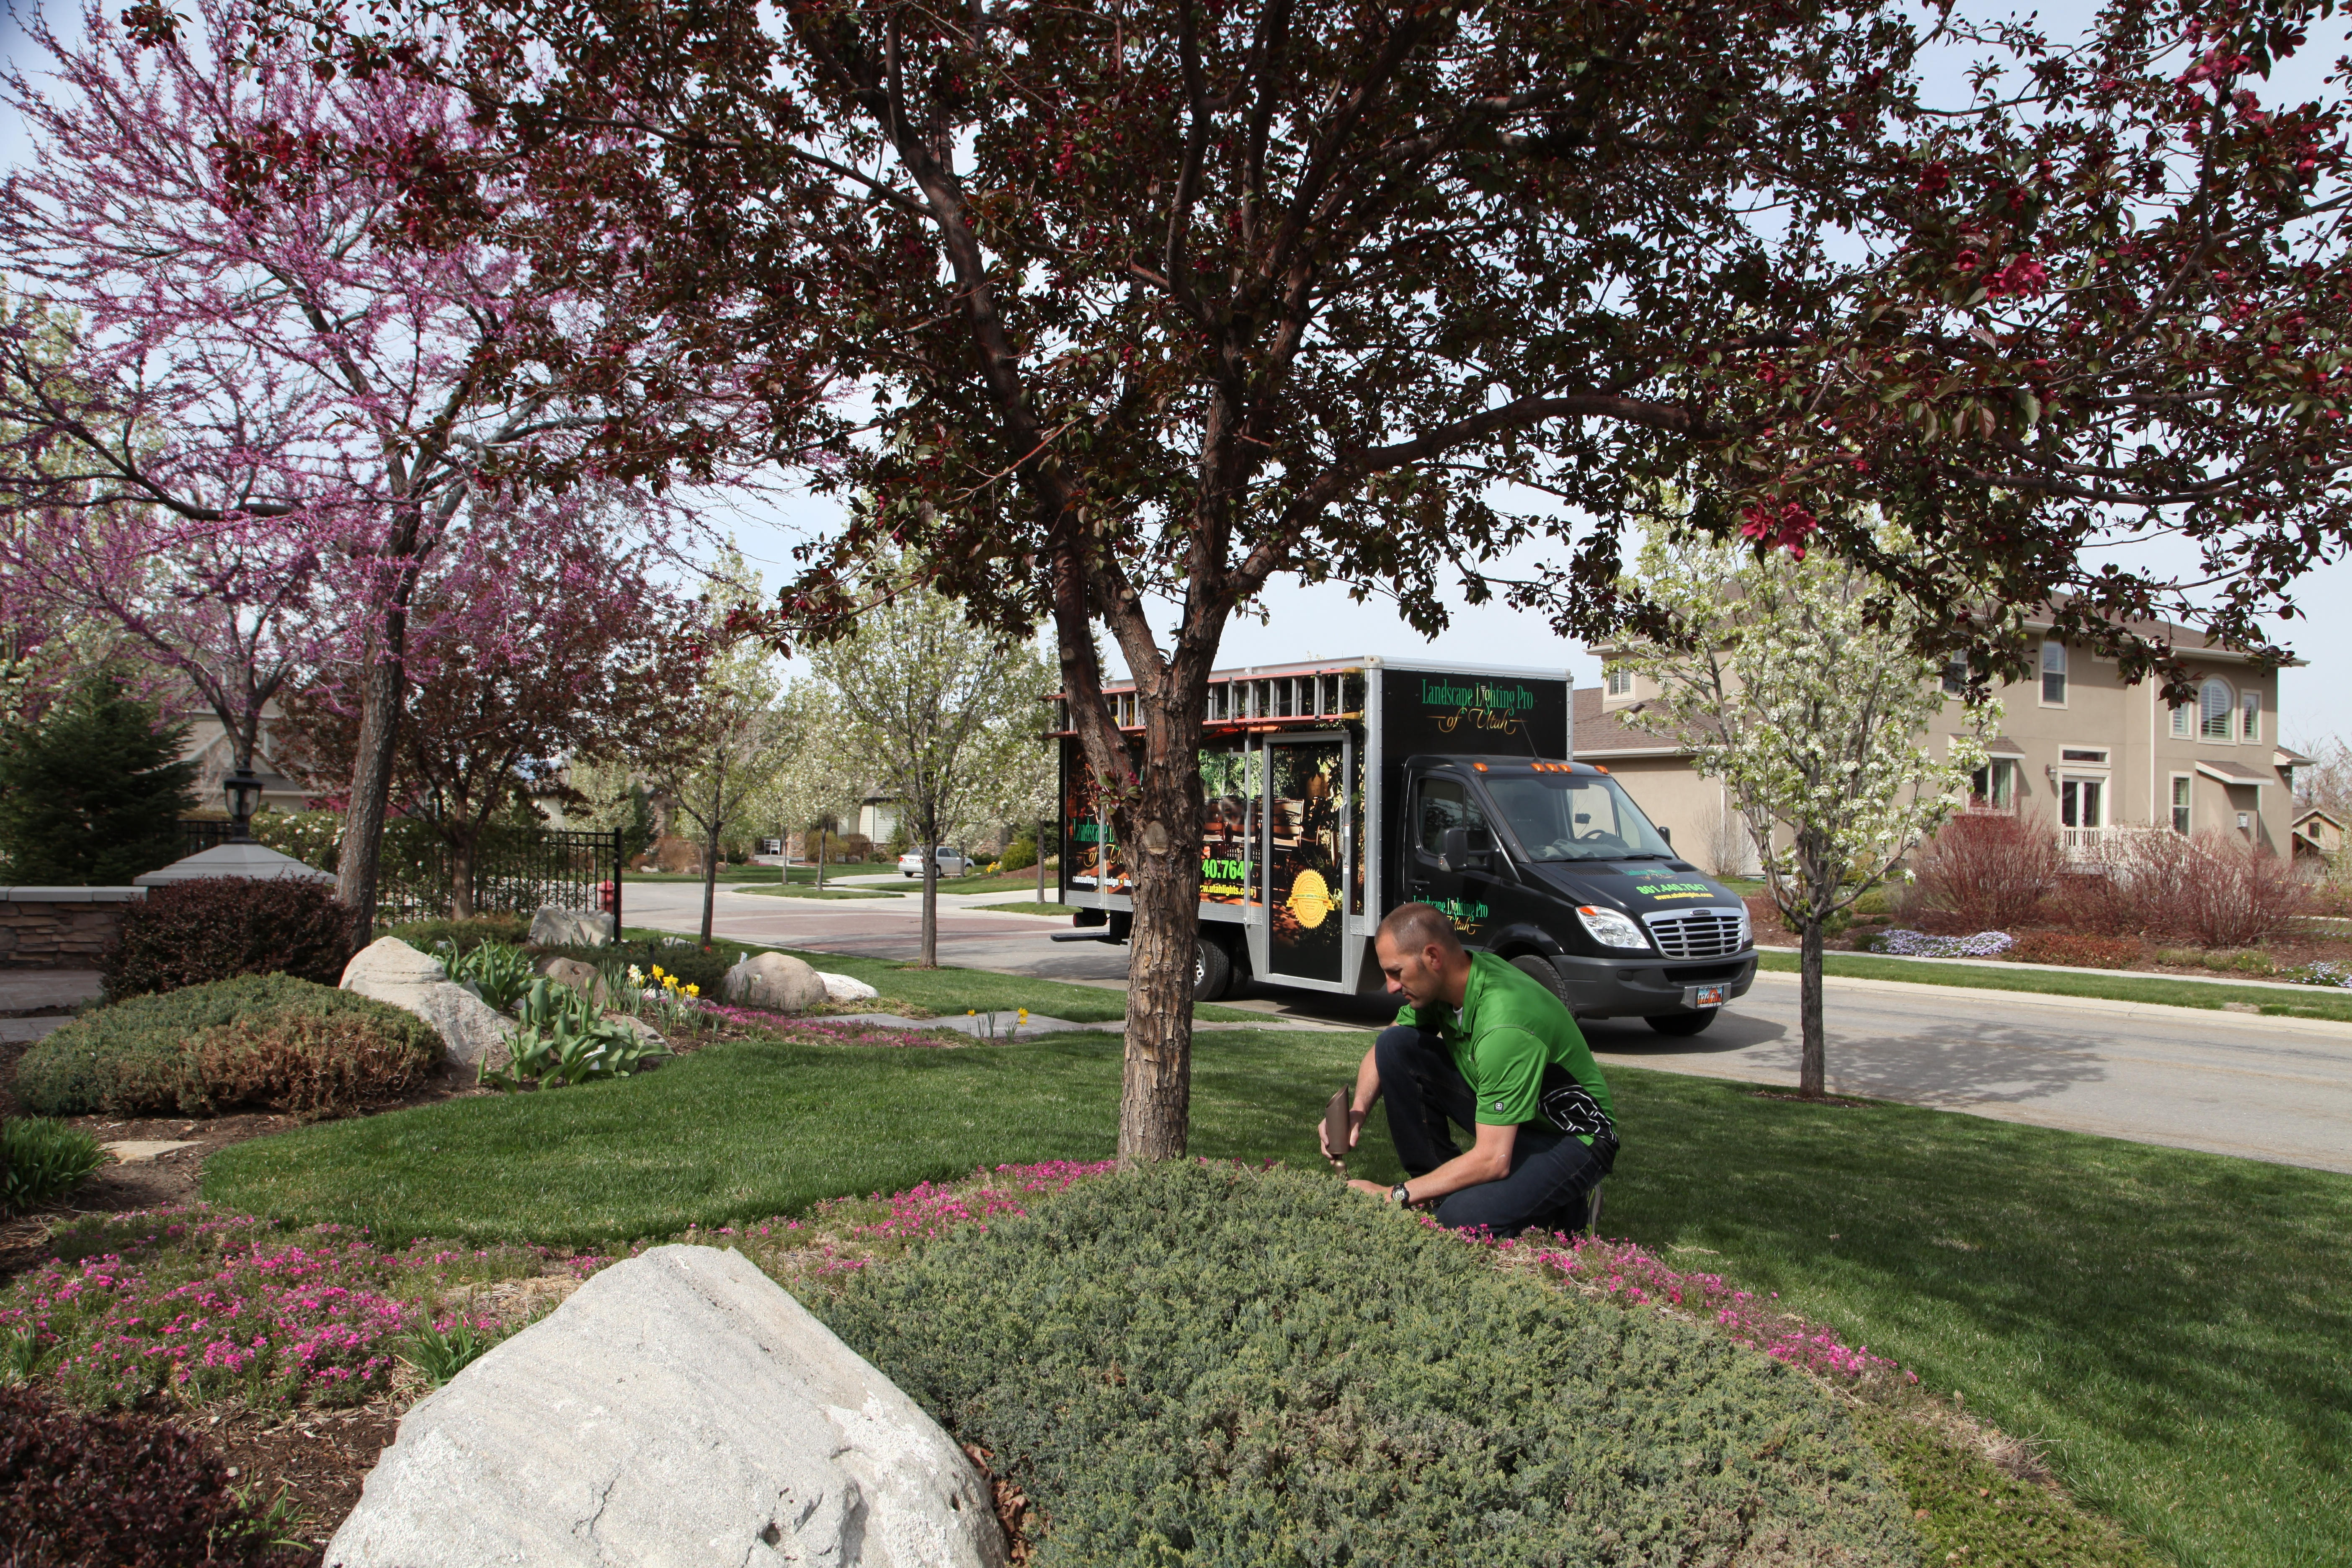 preventative-service-landscape-lighting-system-maintenance